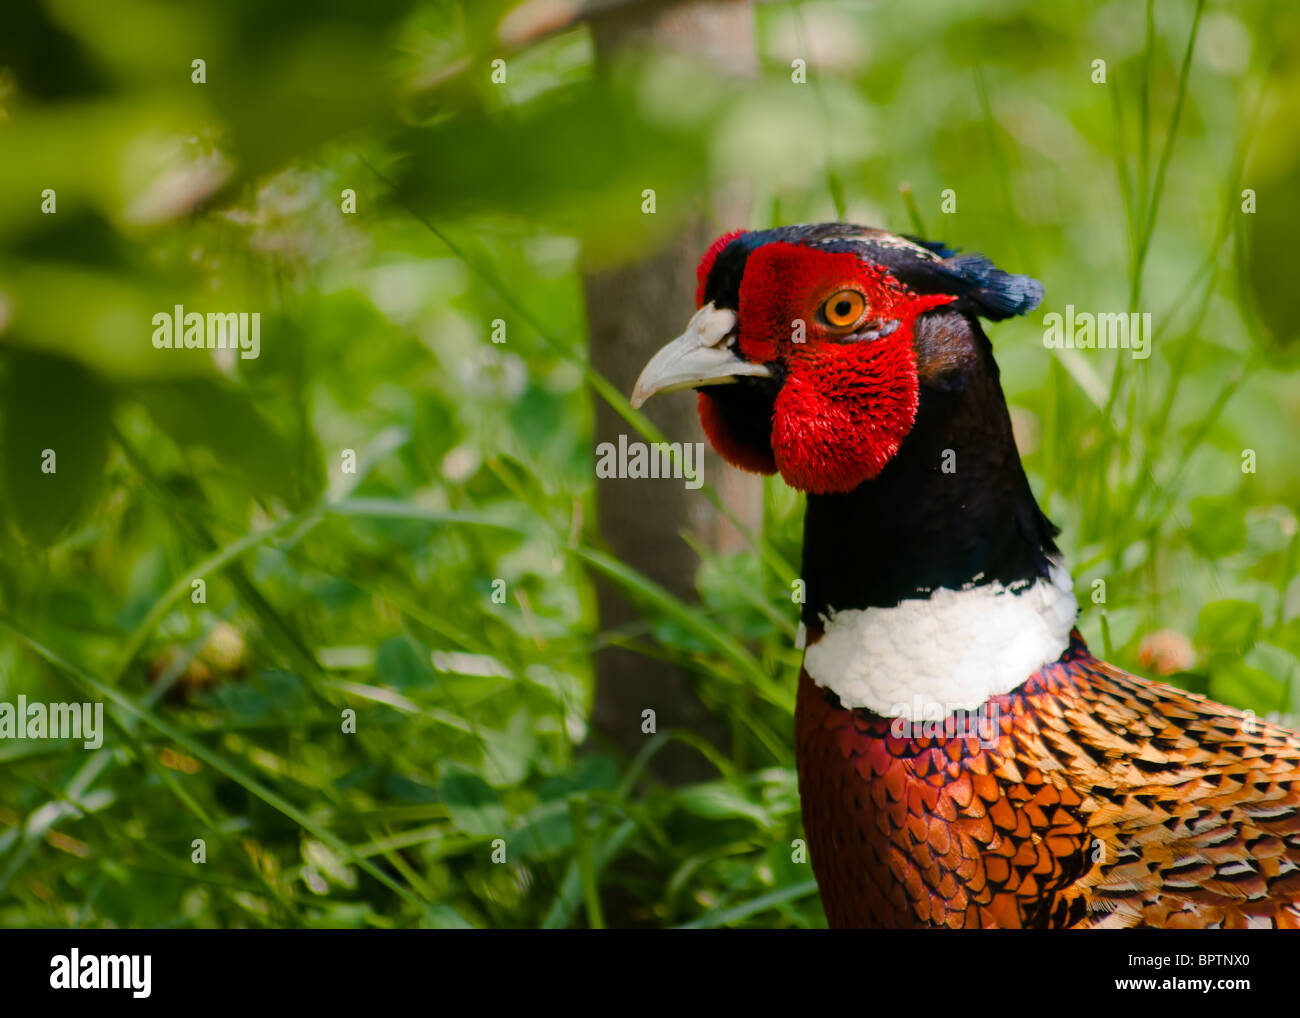 The Common Pheasant (Phasianus colchicus), is a bird in the pheasant family (Phasianidae). 'Ring-necked Pheasant' - Stock Image